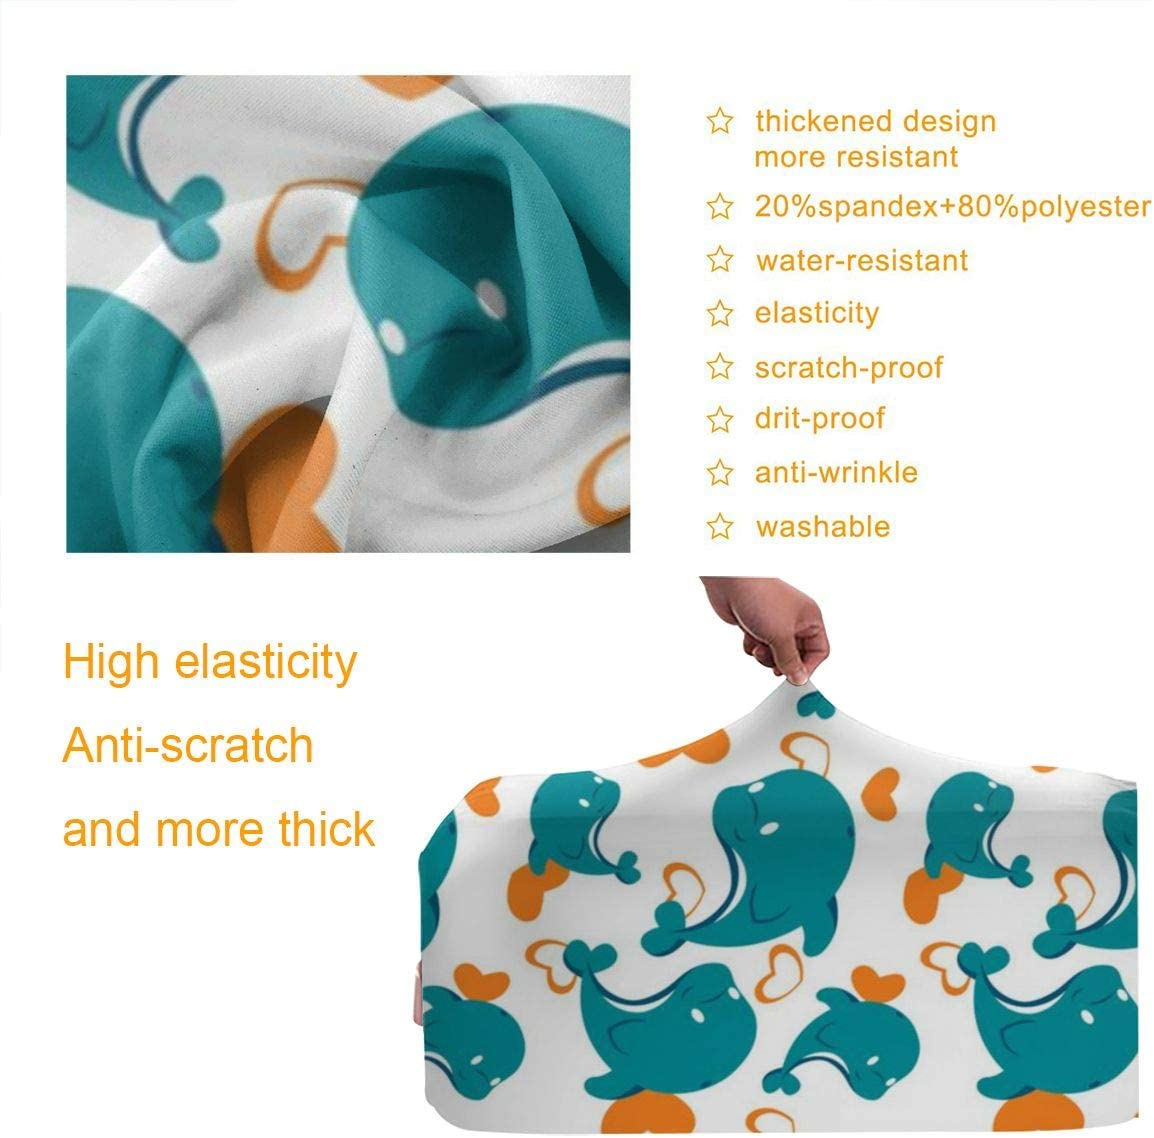 Dolphin Pattern Elastic Travel Luggage Cover,Double Print Fashion Washable Suitcase Protector Cover Fits 18-32inch Luggage